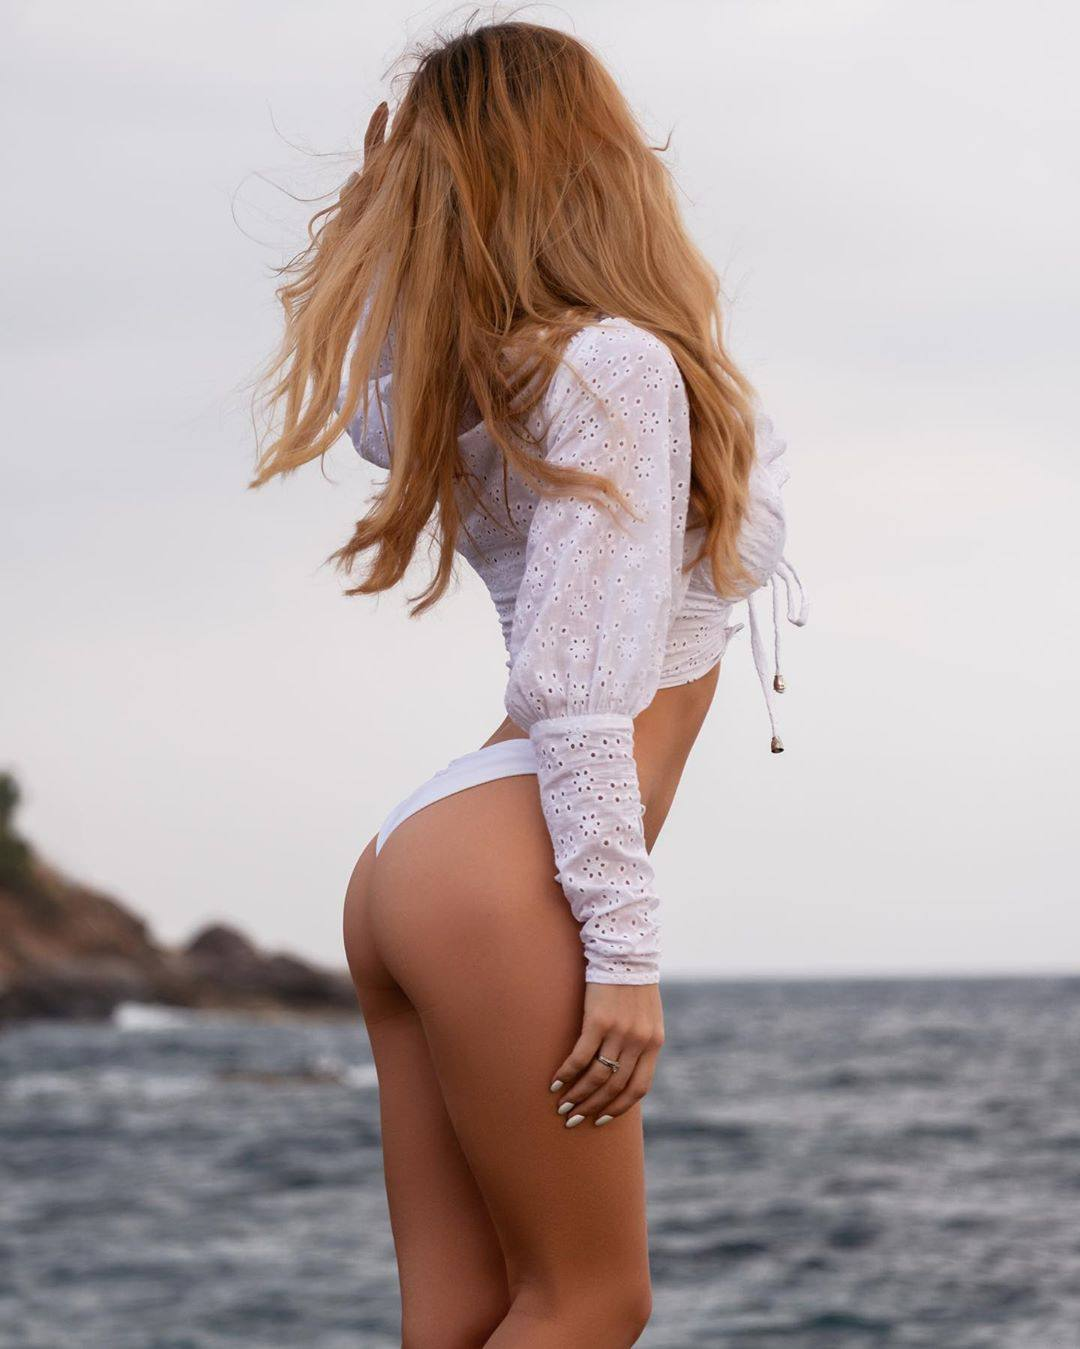 Olya Abramovich – Hot Boobs In Topless Beach Photoshoot (nsfw) 0048